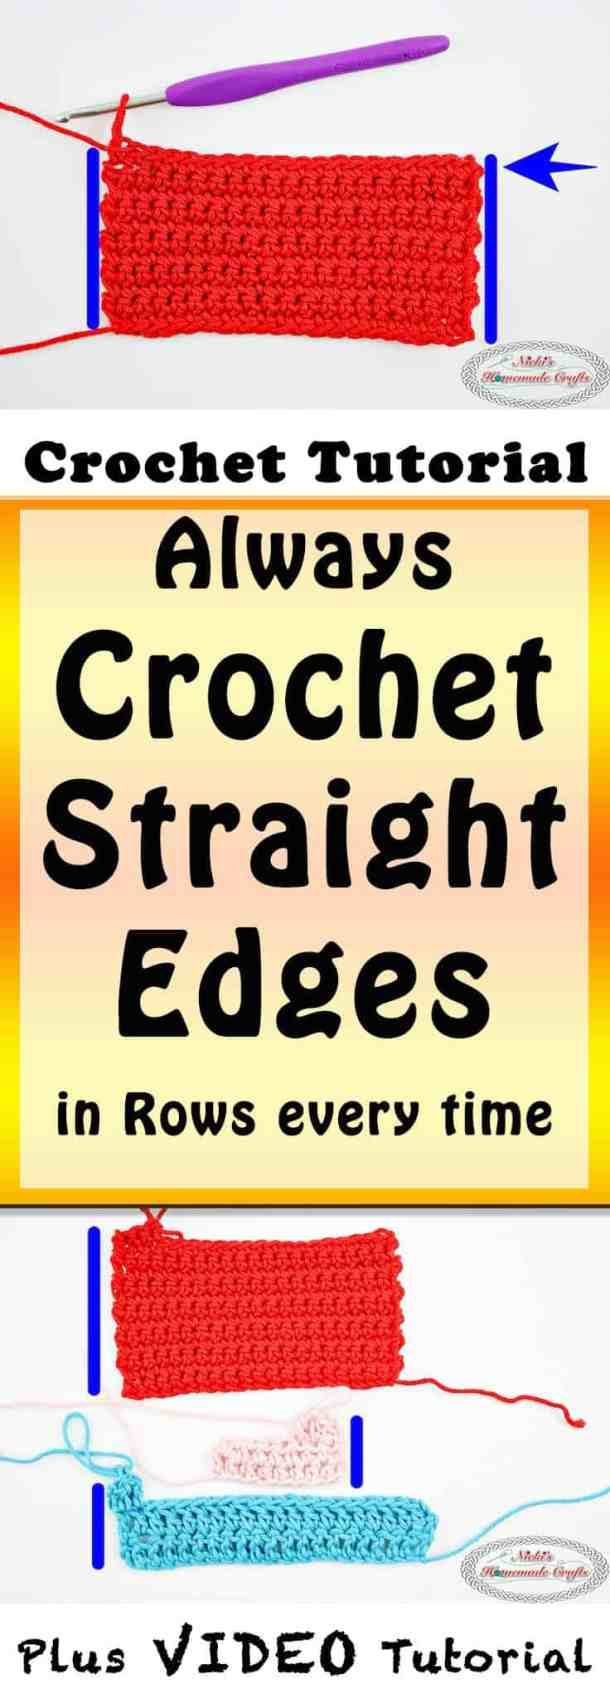 How to always Crochet Straight Edges in Rows Every Time - Photo and Video Tutorial - Nicki's Homemade Crafts #crochet #straight #edges #rows #video #tutorial #always #best #perfect #basic #beginner #learn